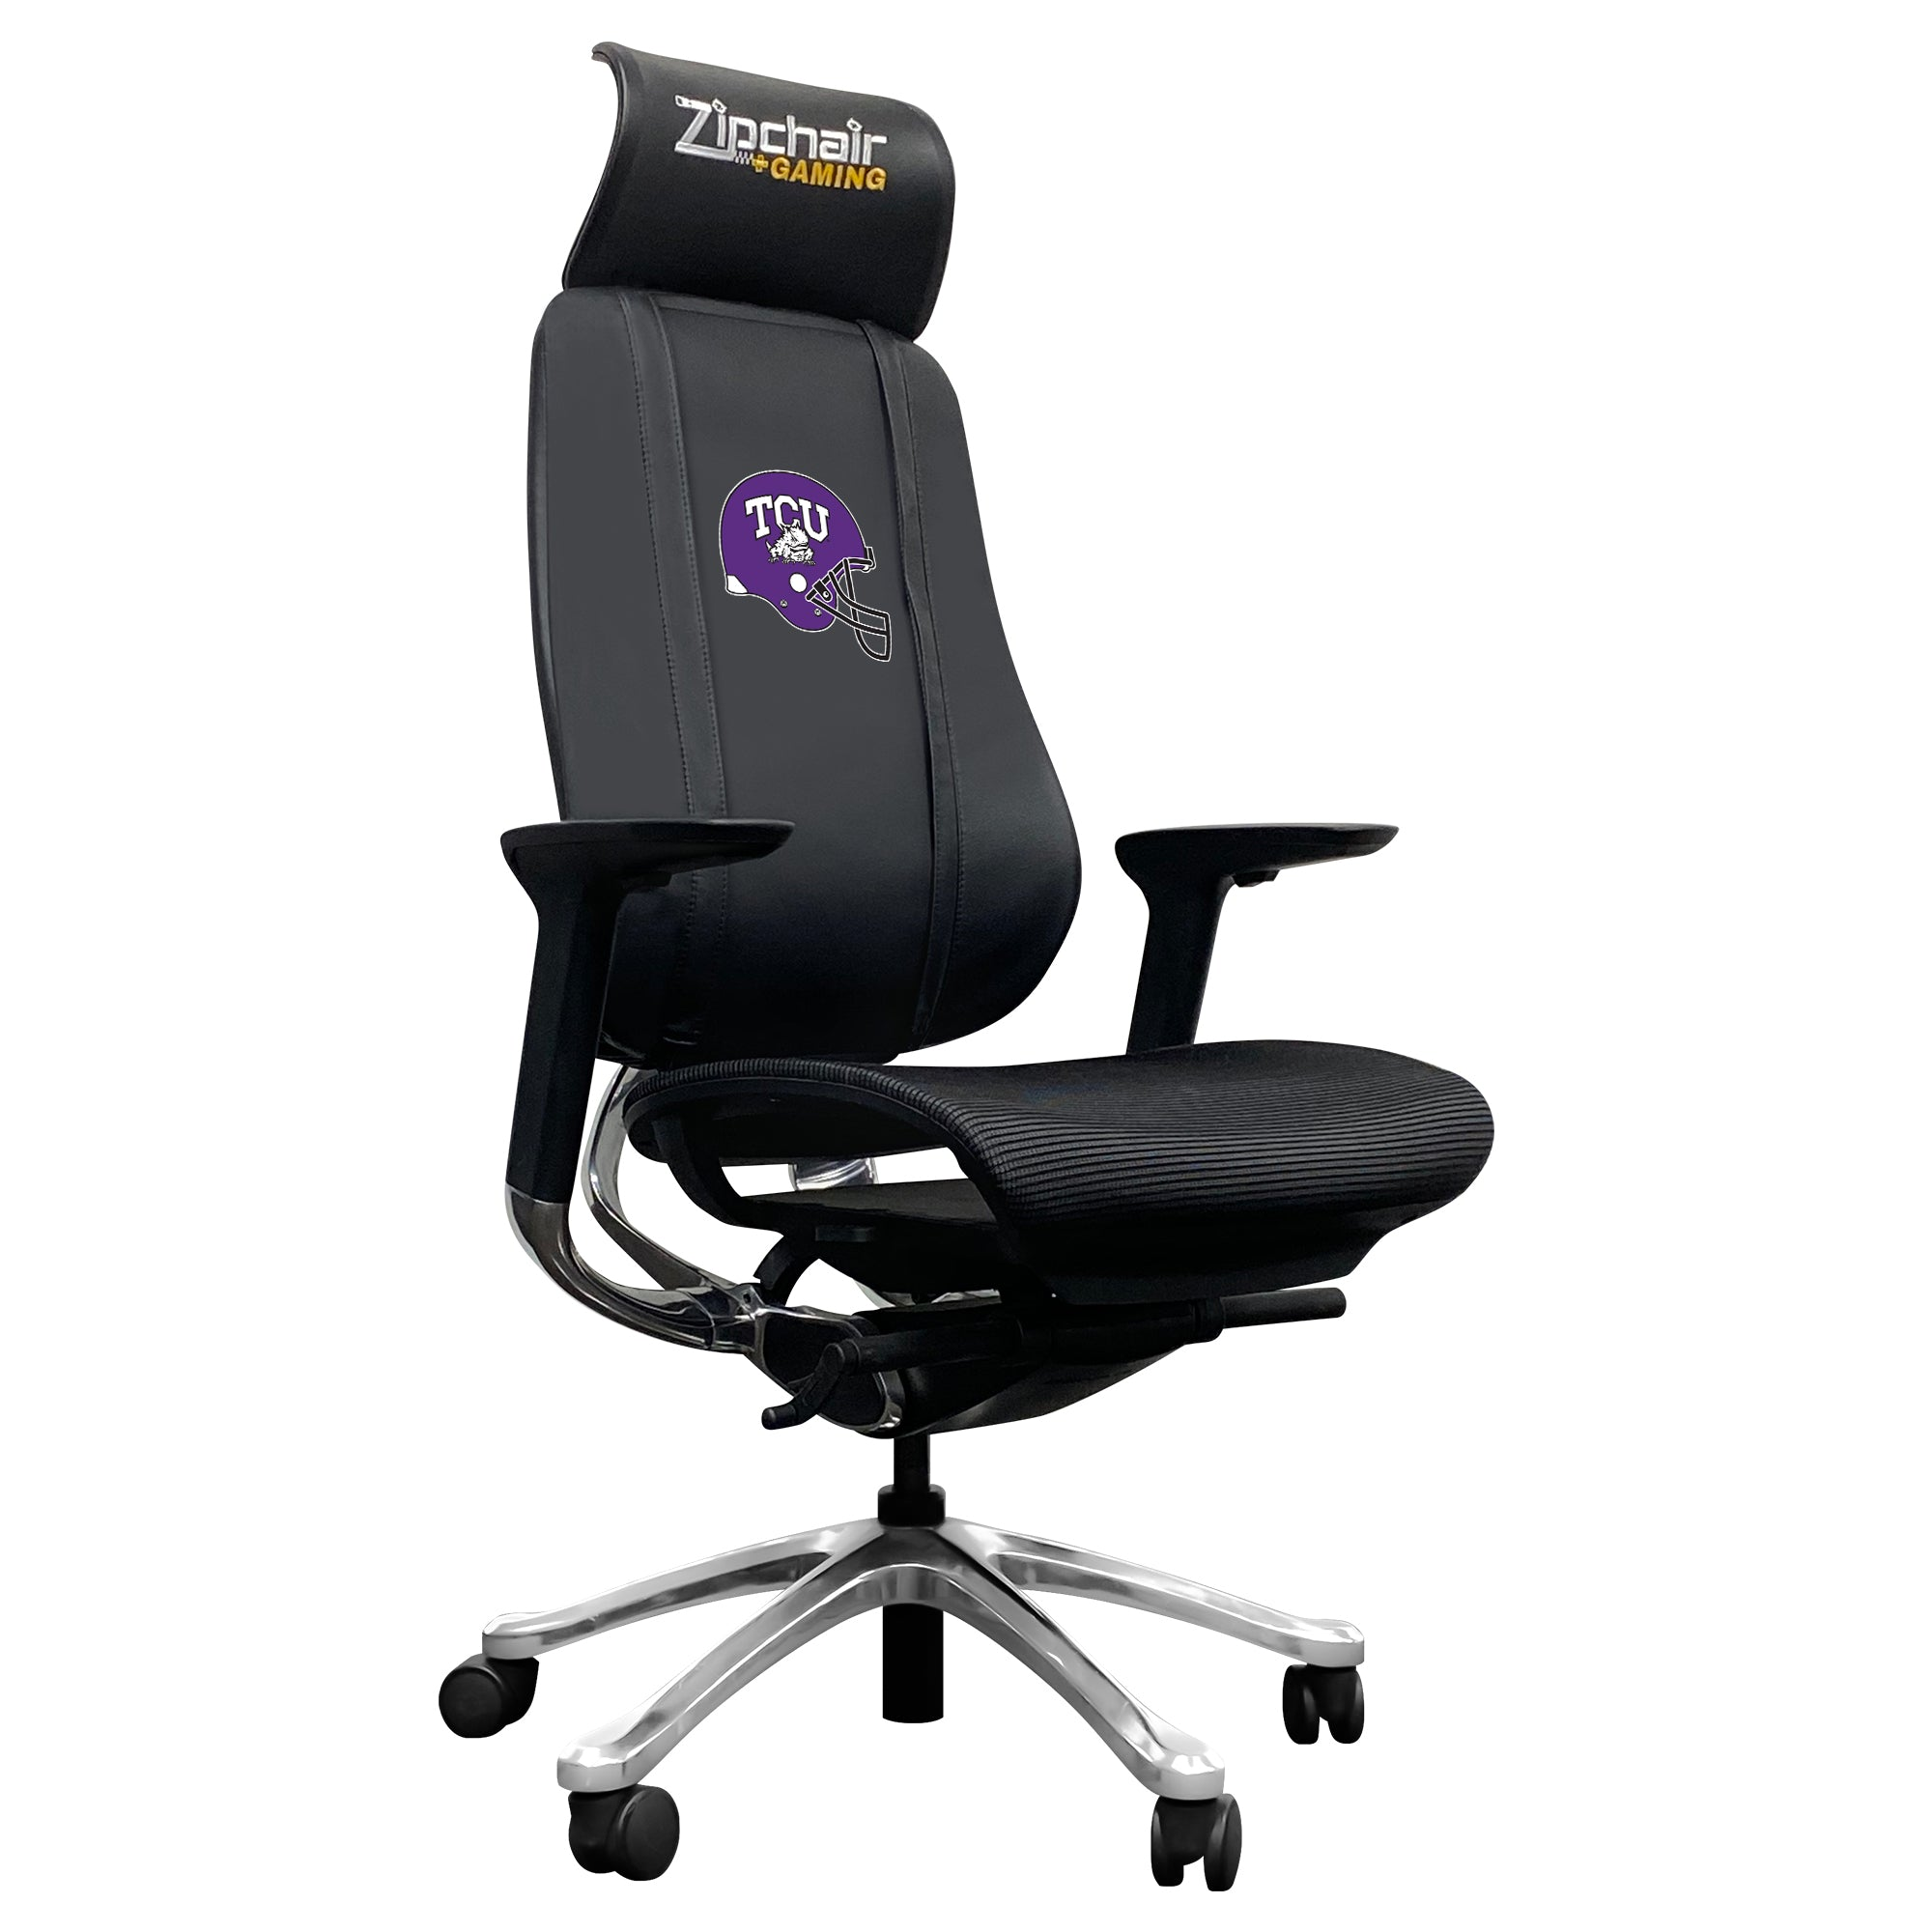 PhantomX Gaming Chair with TCU Horned Frogs Alternate